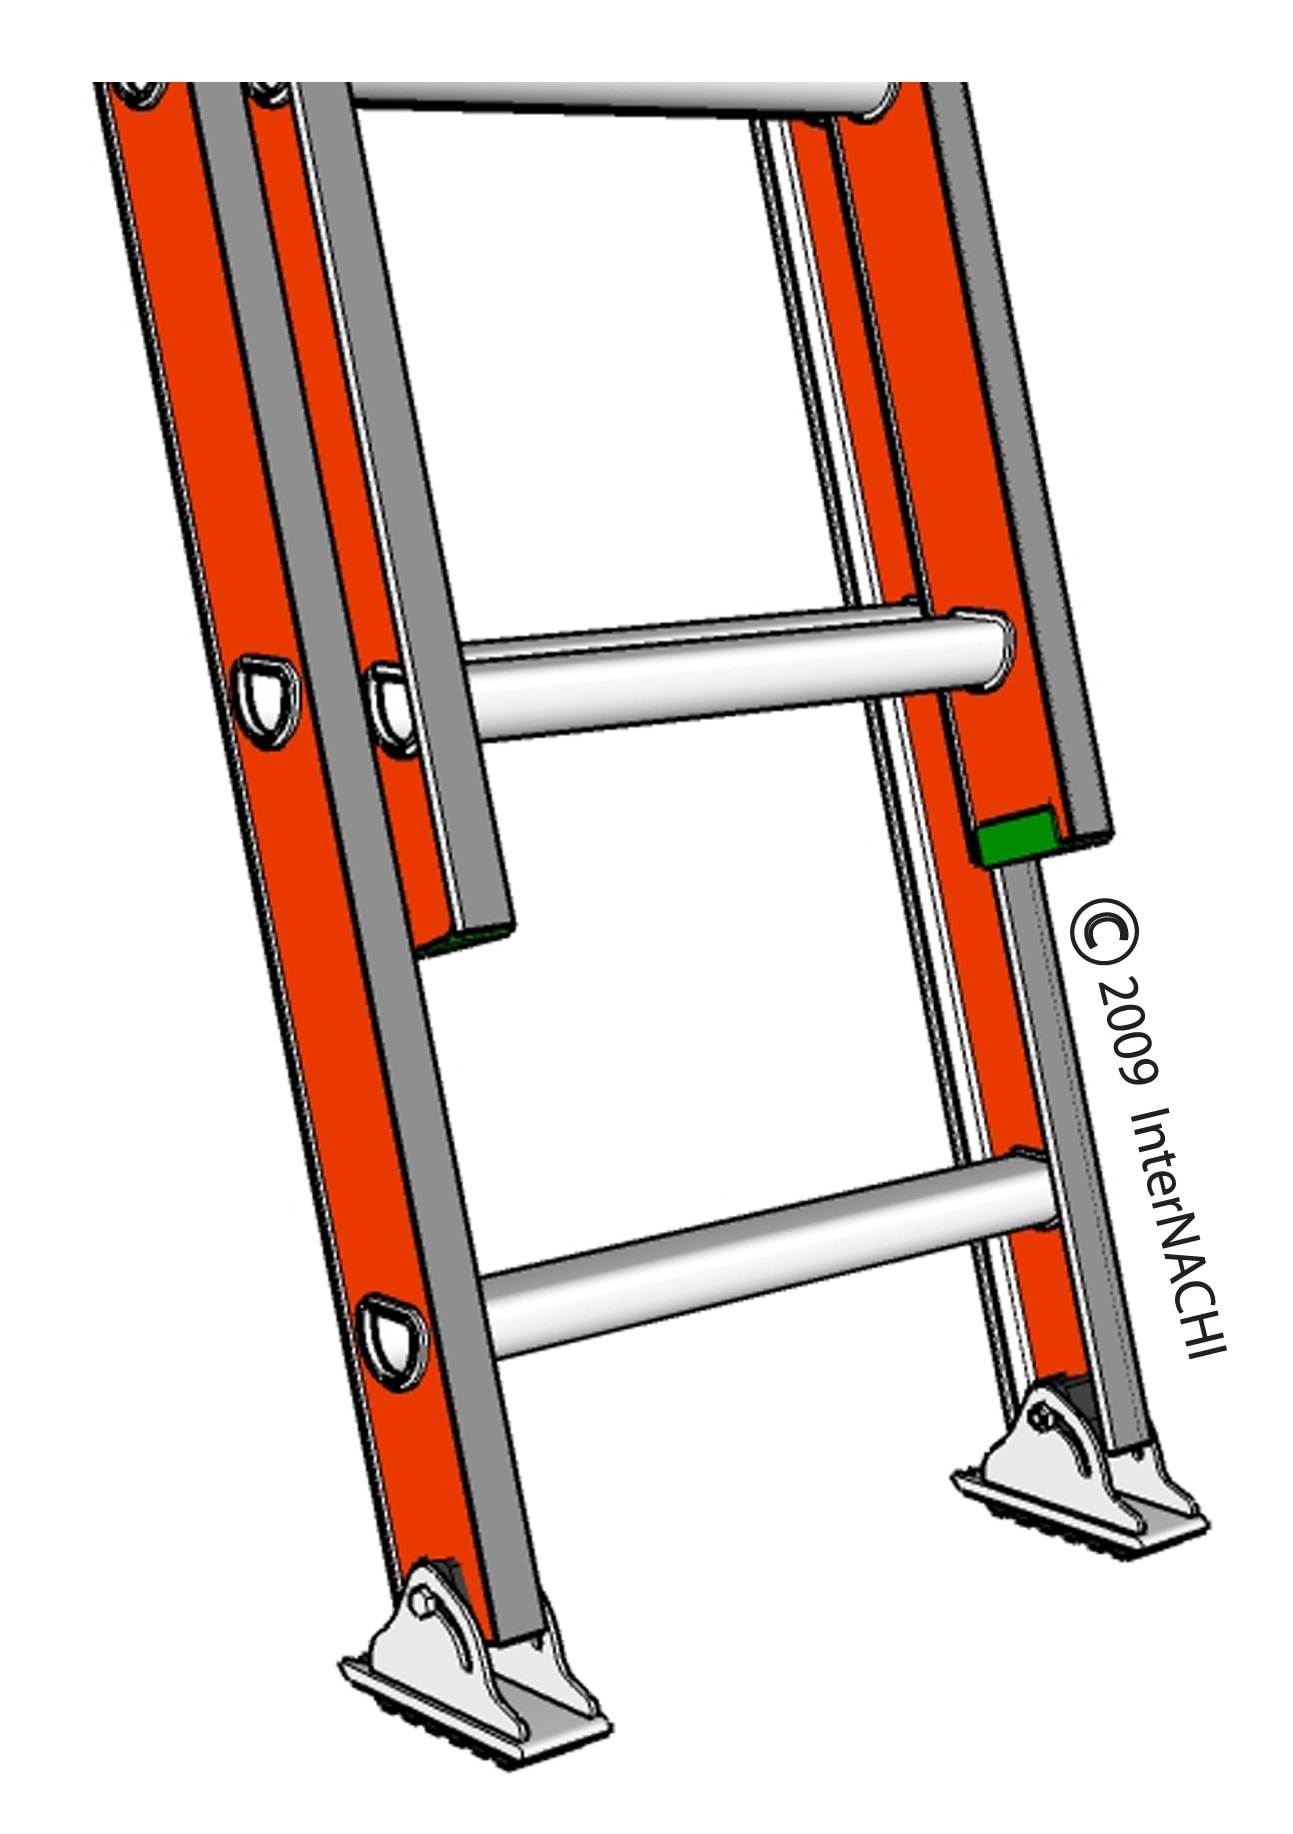 Stable ladder.